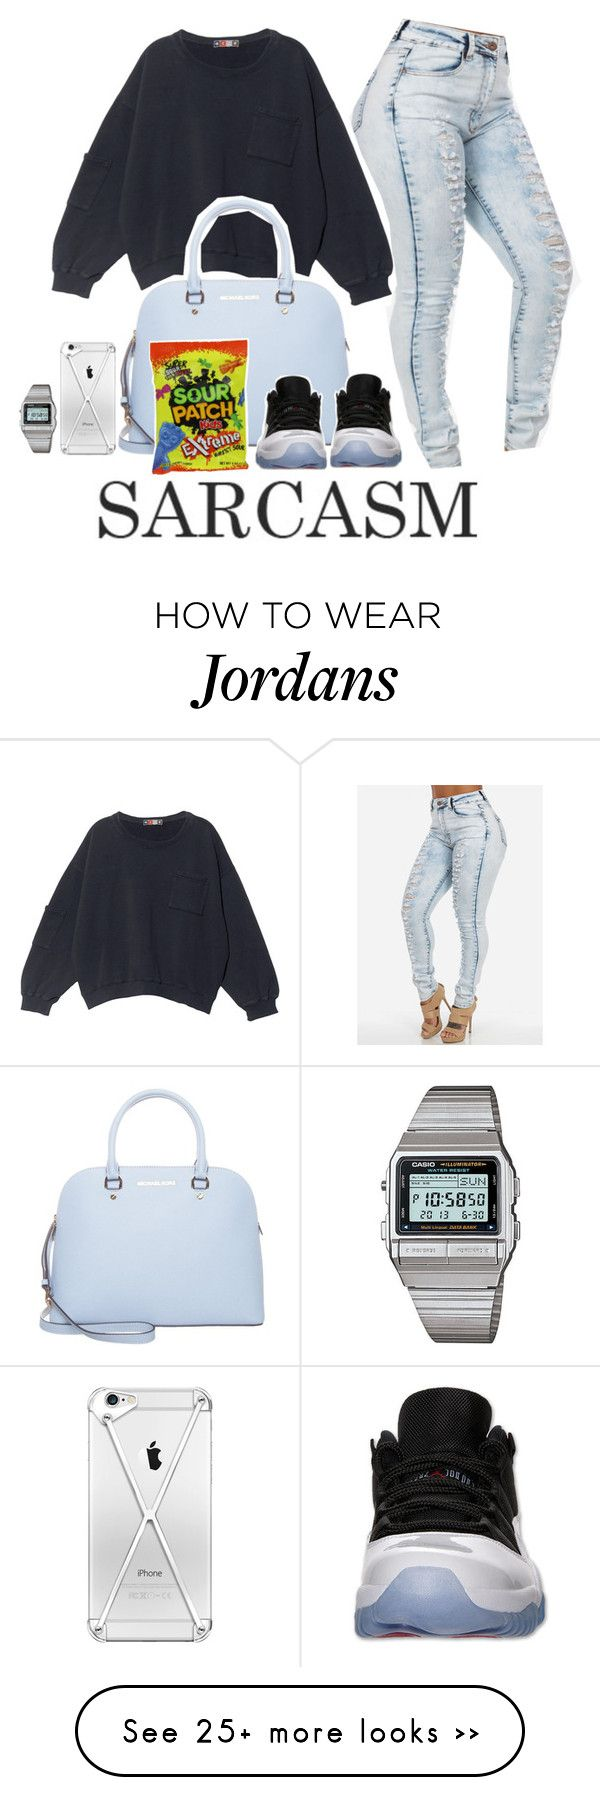 """""""The Fix - Nelly Ft Jeremih ❤️❤️"""" by pingping0987 on Polyvore featuring moda, MSGM, MICHAEL Michael Kors y Casio"""